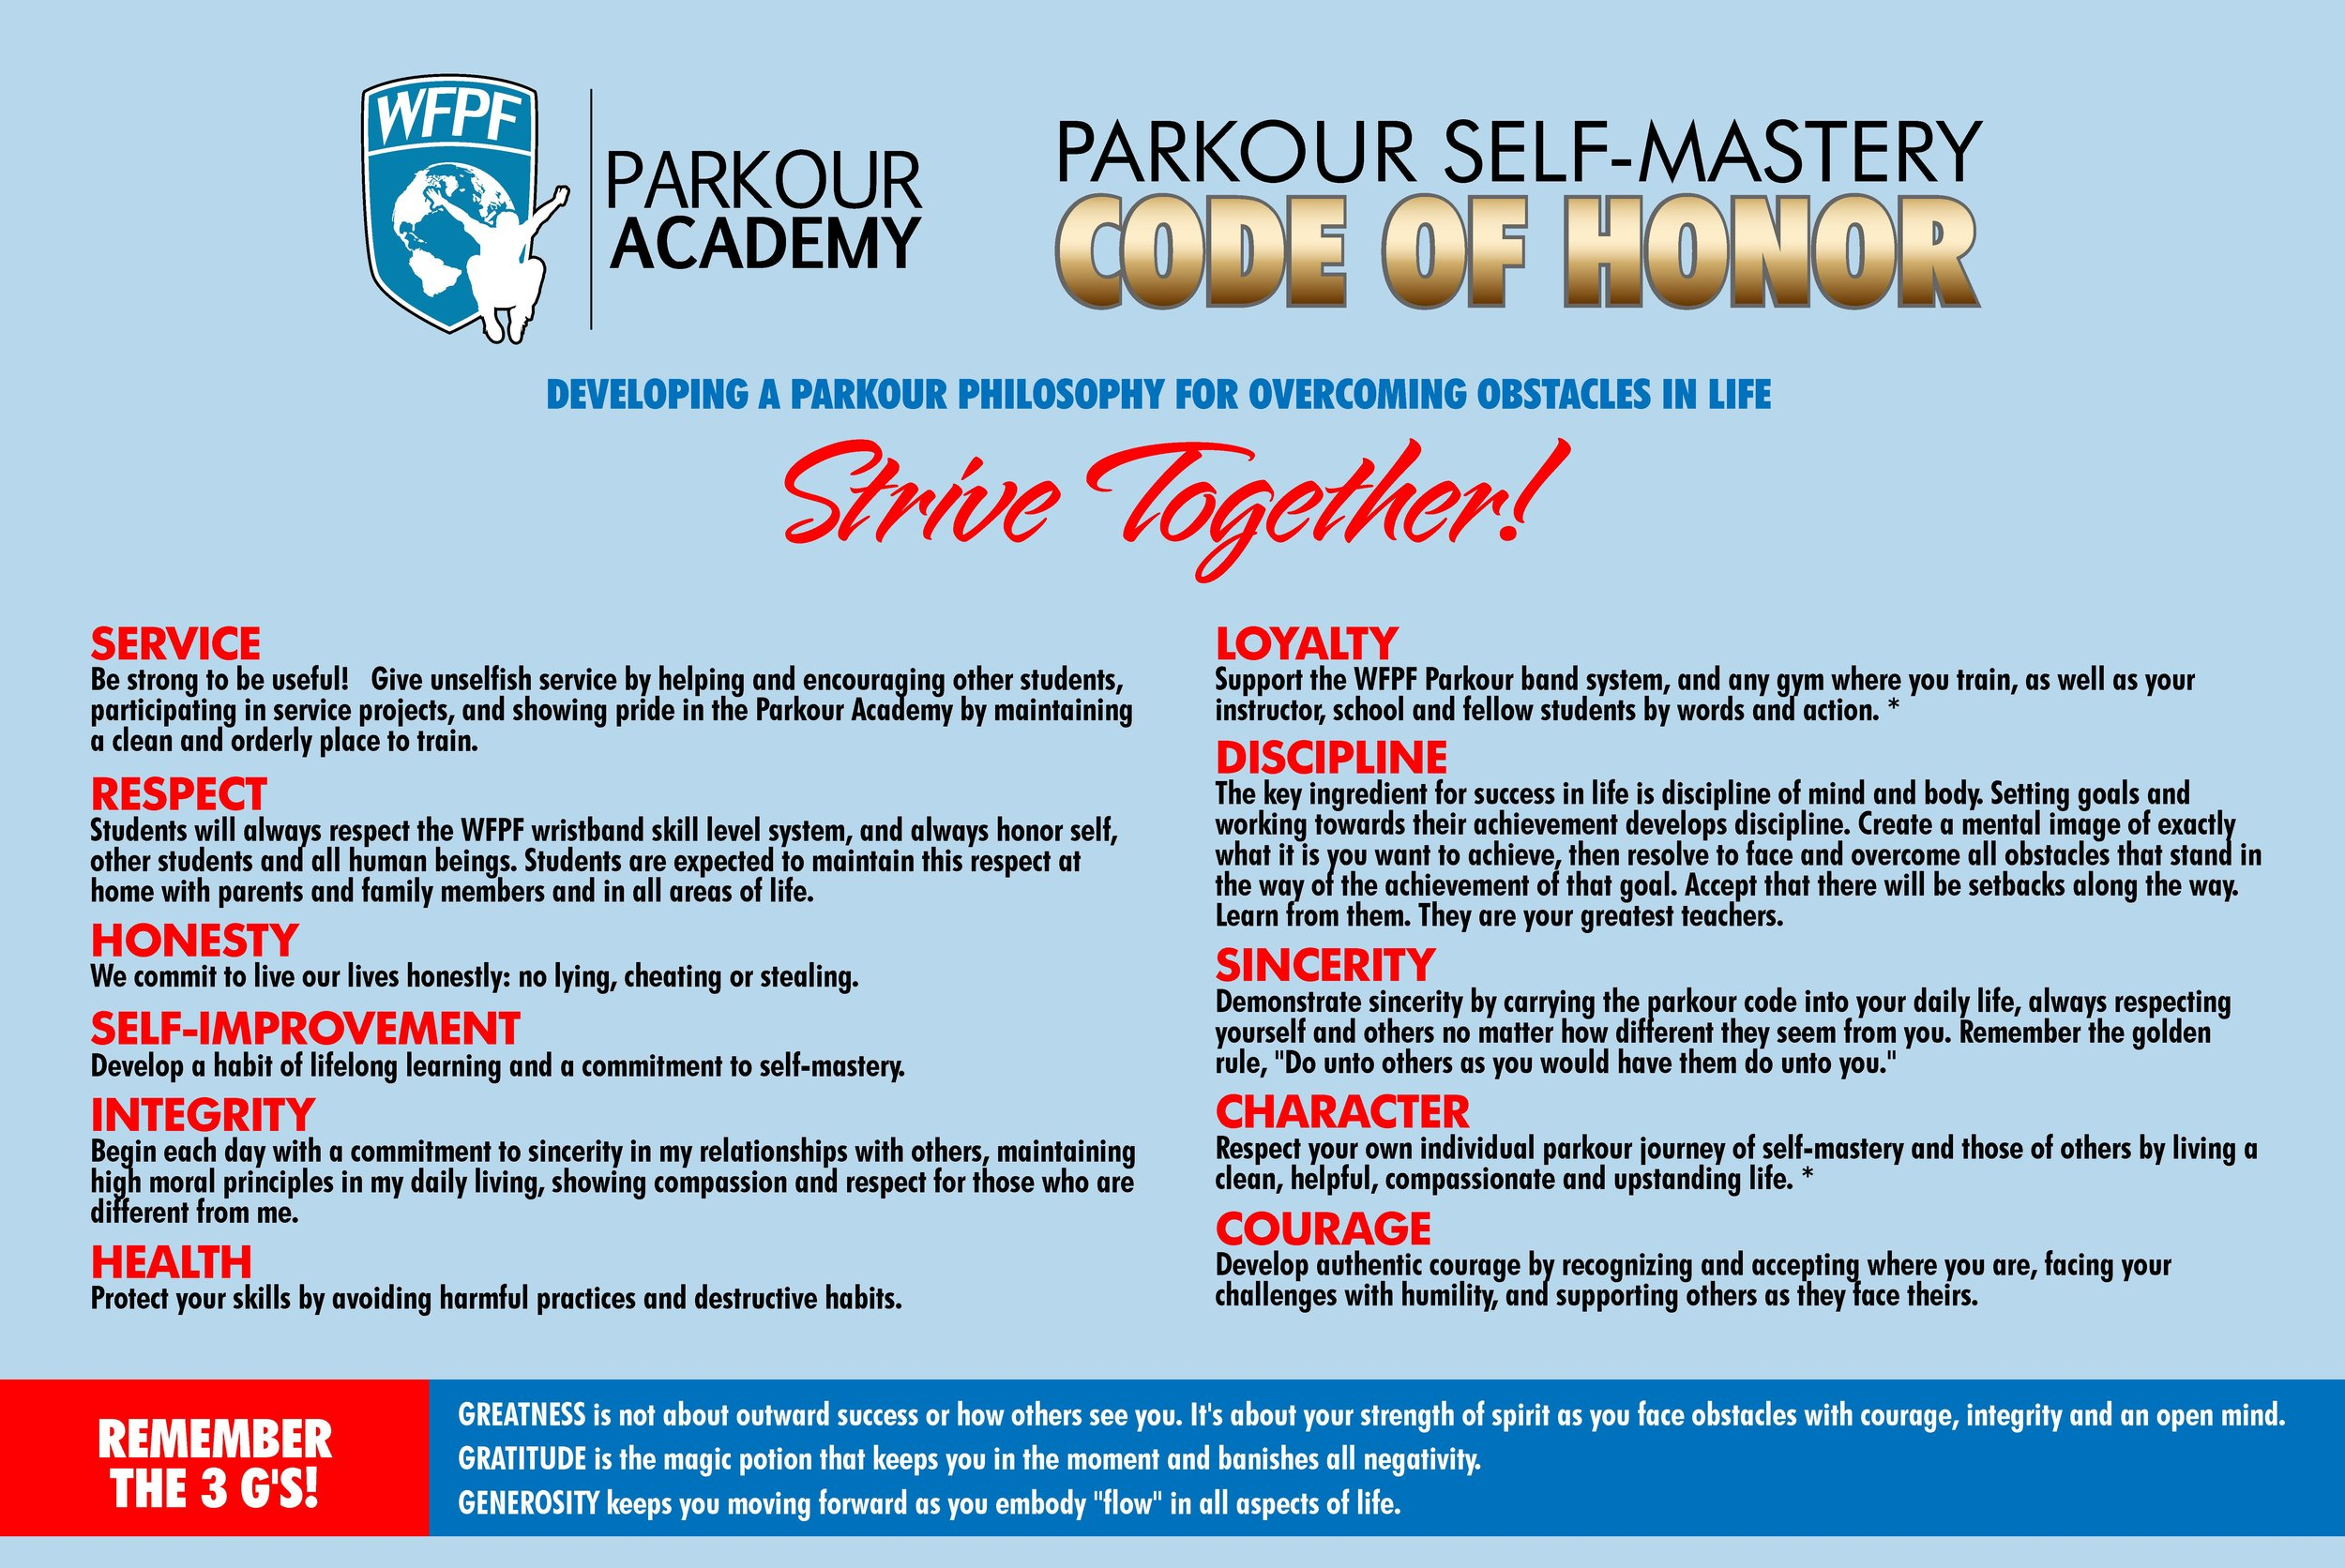 PARKOUR SELF-MASTERY CODE OF HONOR.jpg